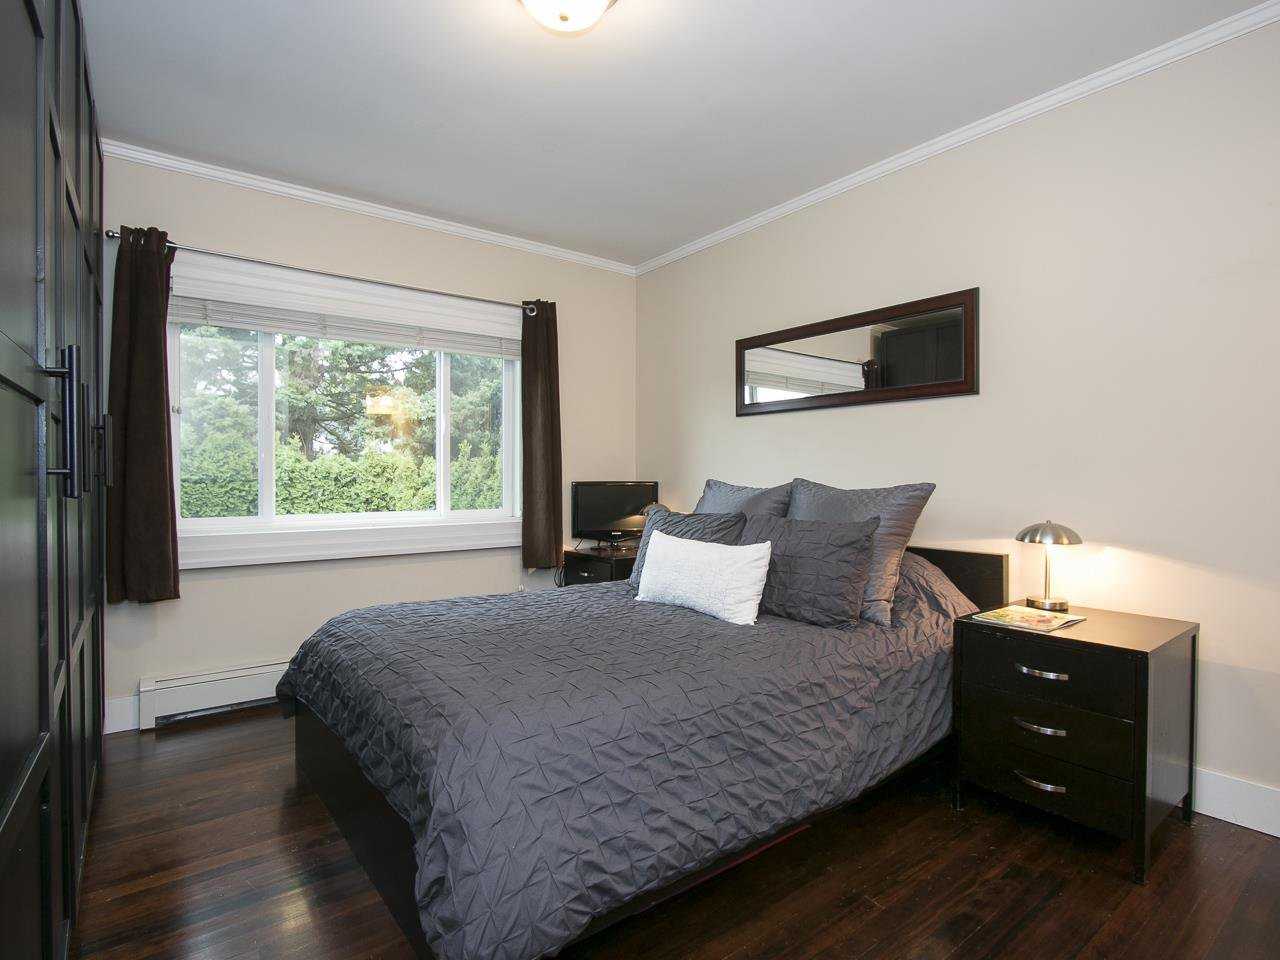 Photo 6: Photos: 731 W KING EDWARD AVENUE in Vancouver: Cambie House for sale (Vancouver West)  : MLS®# R2204992